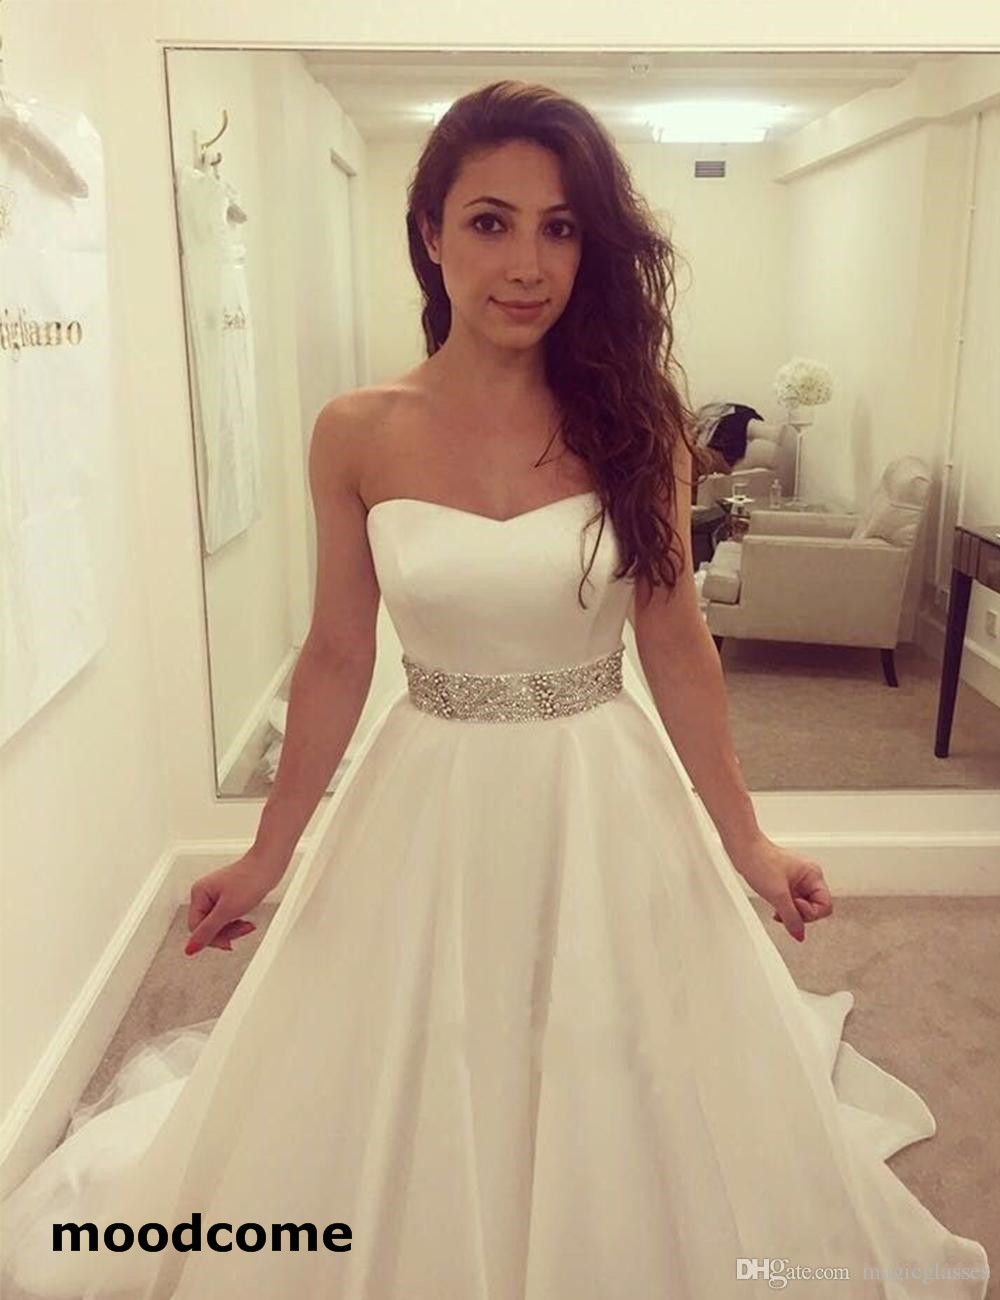 Sweetheart Neckline Wedding Dress with Corseted High Back Crepe Satin Bodice Bridal Gown Organza and Tulle Layered